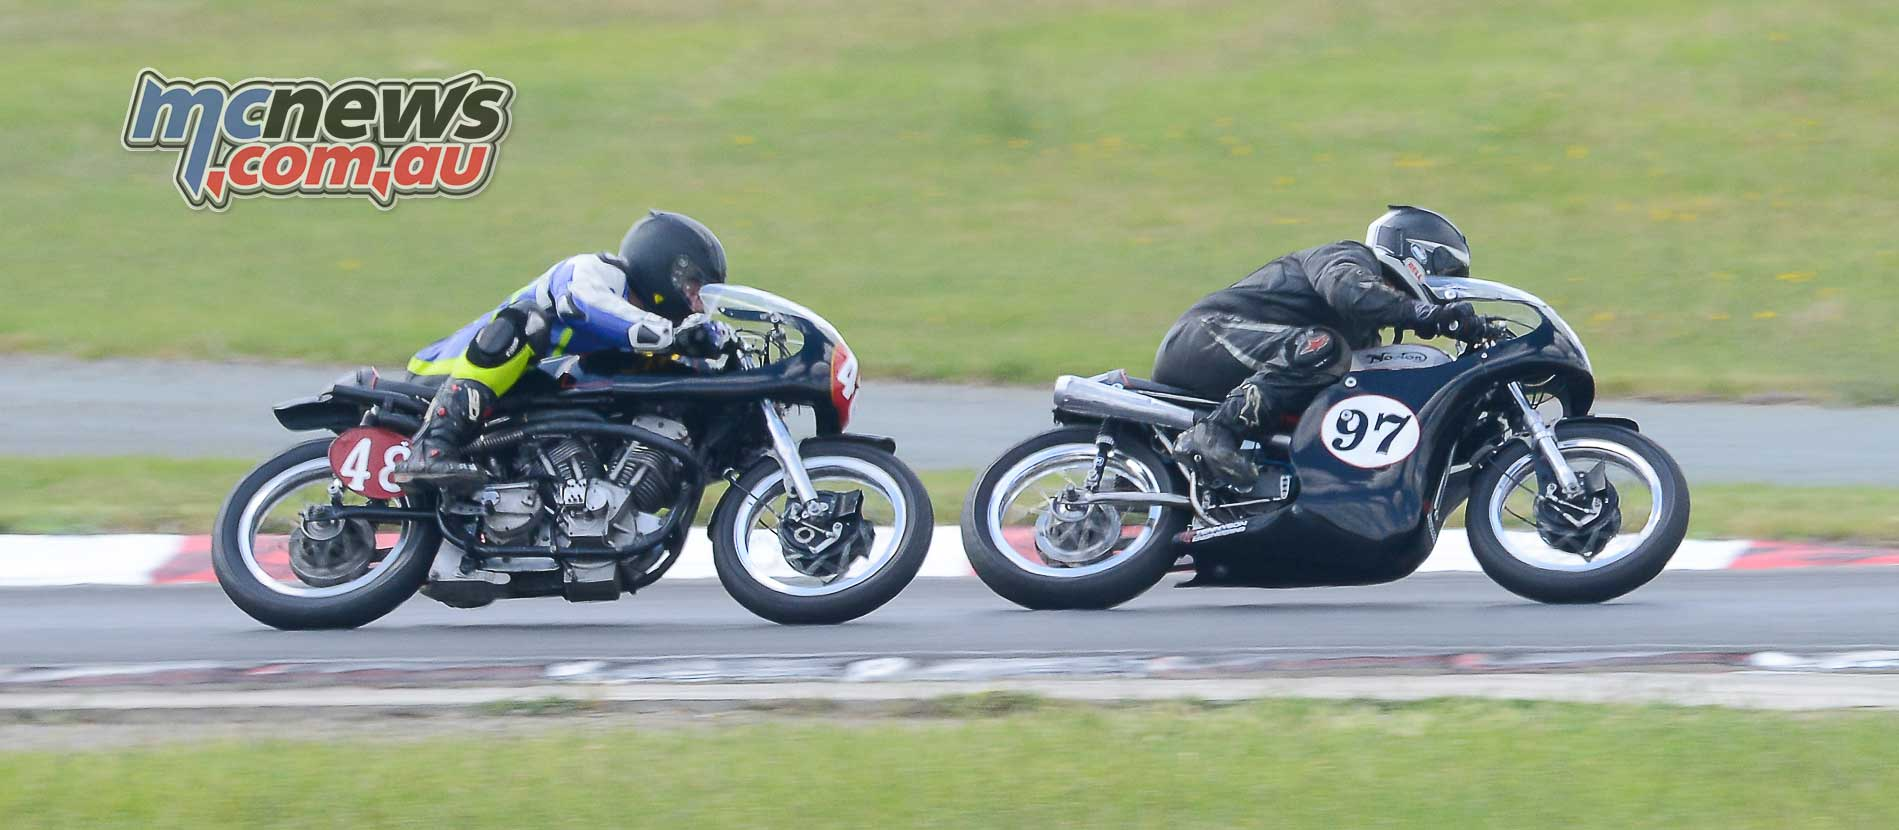 Period 3 Unlimited champ Garth Francis 1962 Norton Atlas 750 relinquished his crown with a big trip over the handlebars in the final to David Trotter on the thunderous 1956 JAP 1000